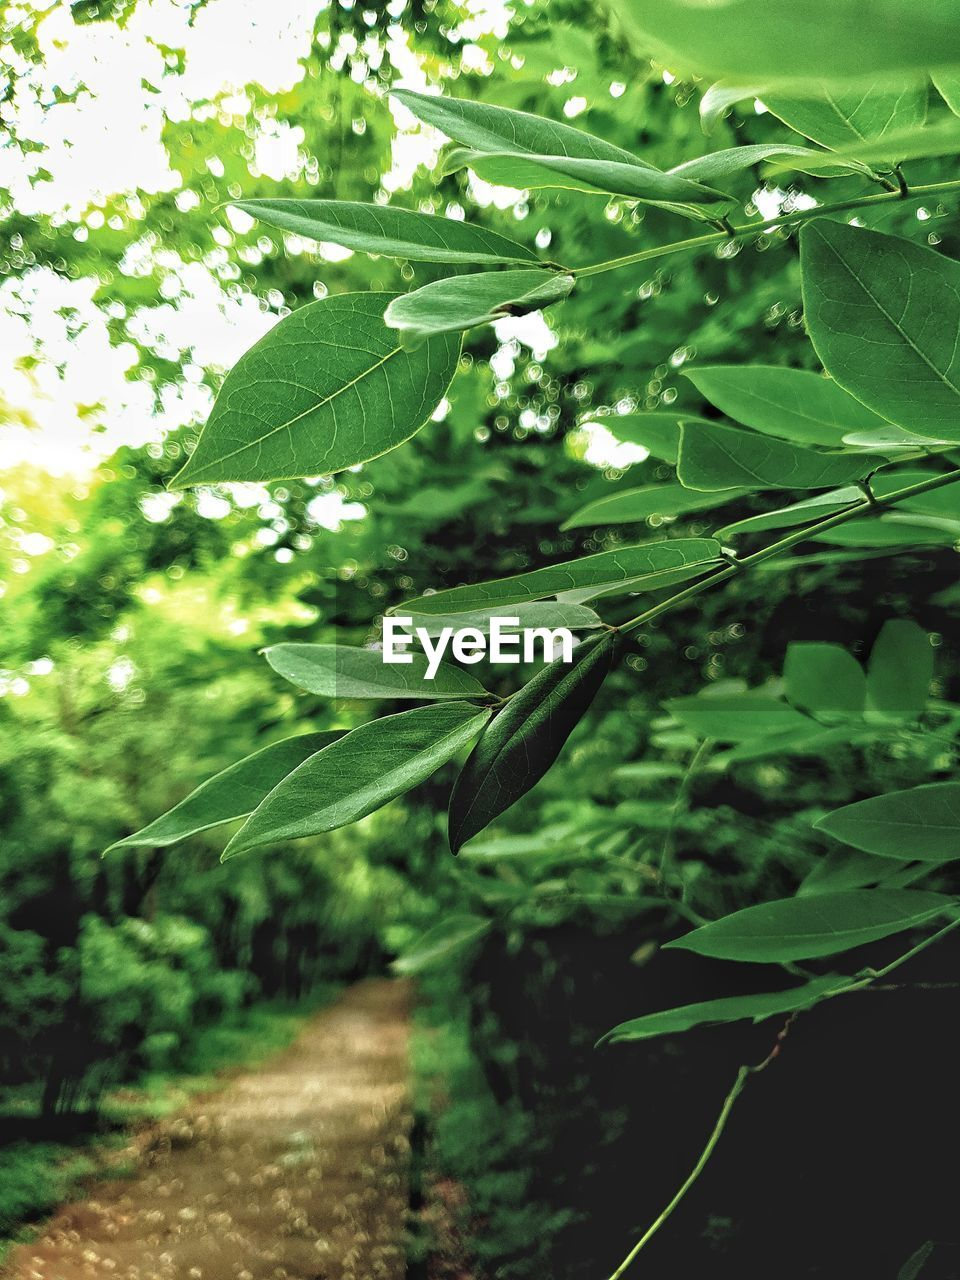 plant, leaf, plant part, growth, green color, nature, beauty in nature, no people, focus on foreground, close-up, day, tree, tranquility, outdoors, selective focus, sunlight, land, forest, freshness, branch